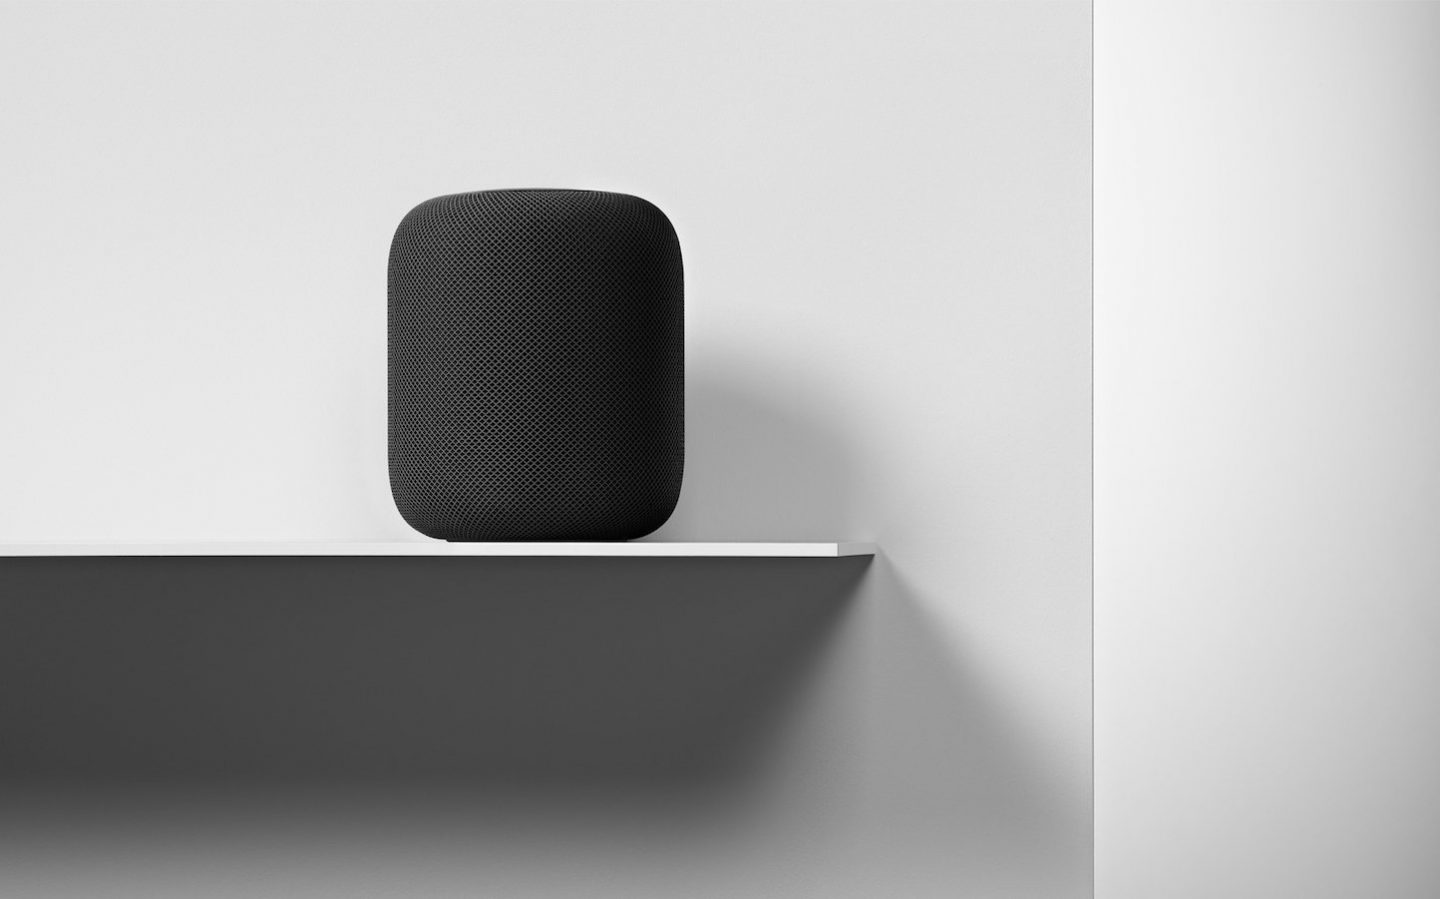 How to find iPhone with HomePod